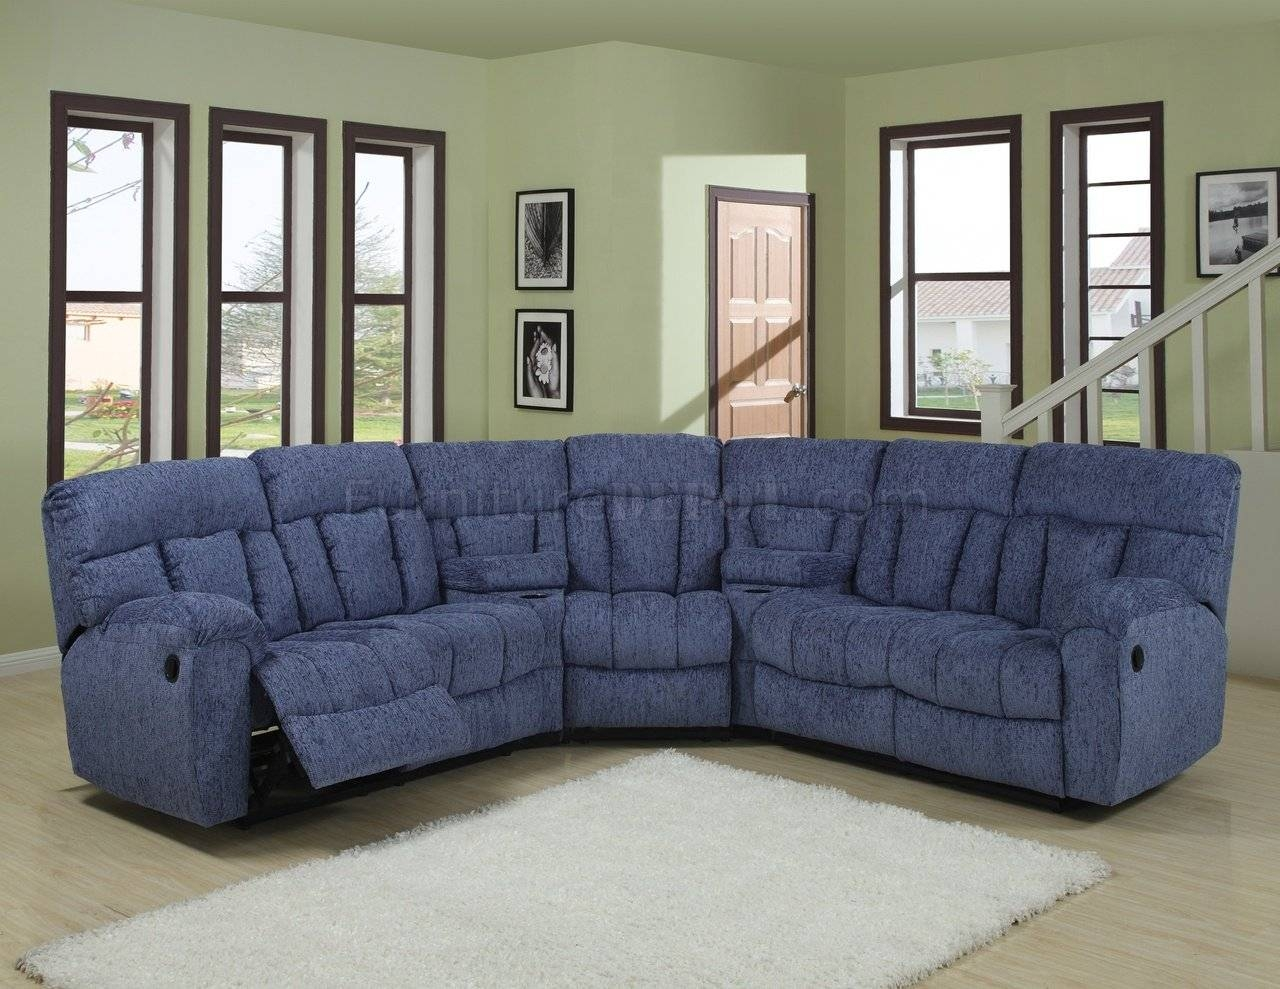 Blue Or Beige Fabric Modern 5Pc Reclining Sectional Sofa regarding Recliner Sectional Sofas (Image 4 of 30)